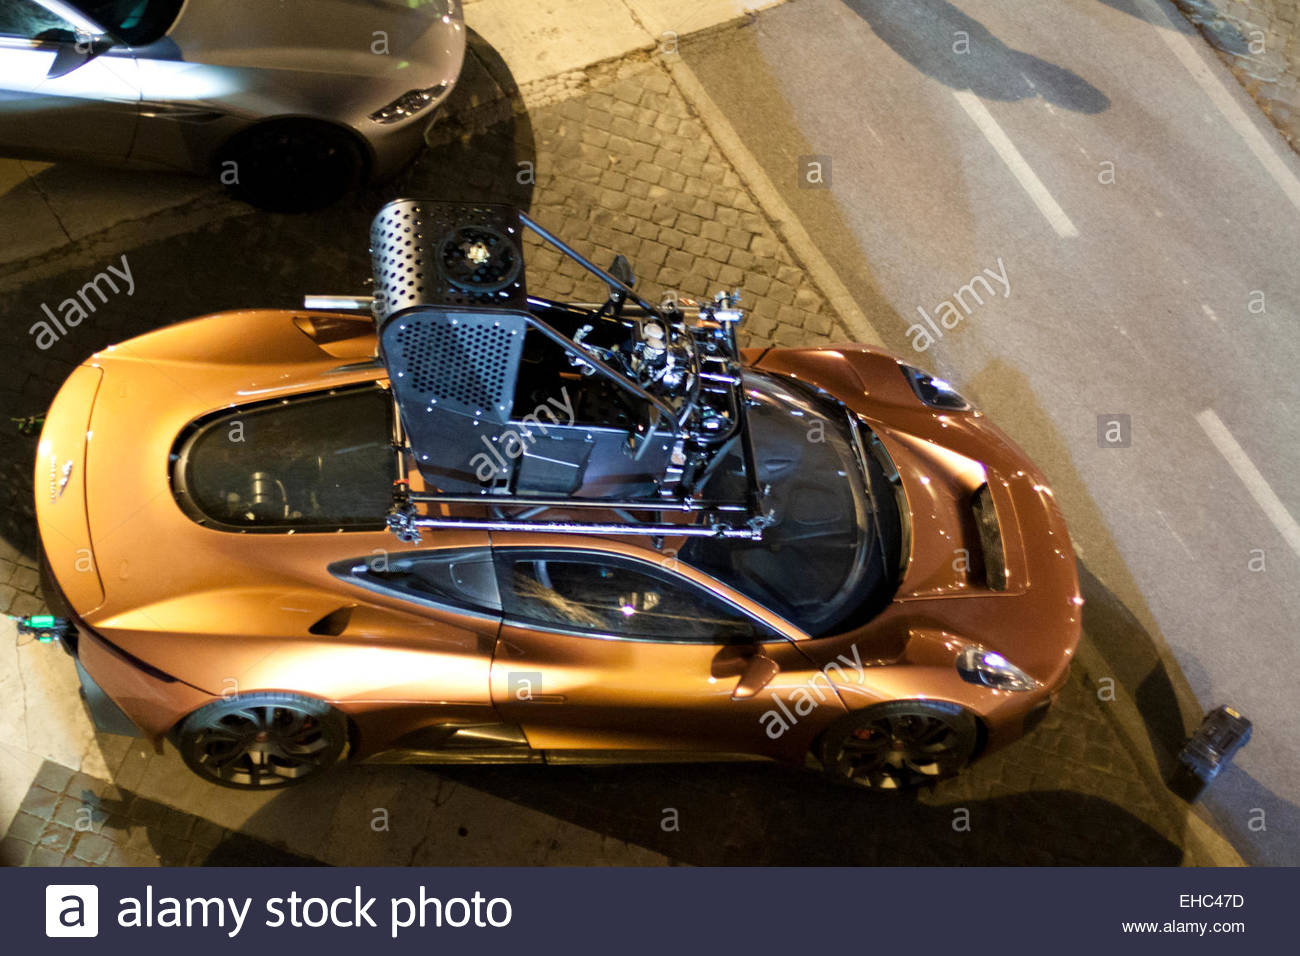 rome italy 10th march 2015 filming car chase scene for new james bond EHC47D